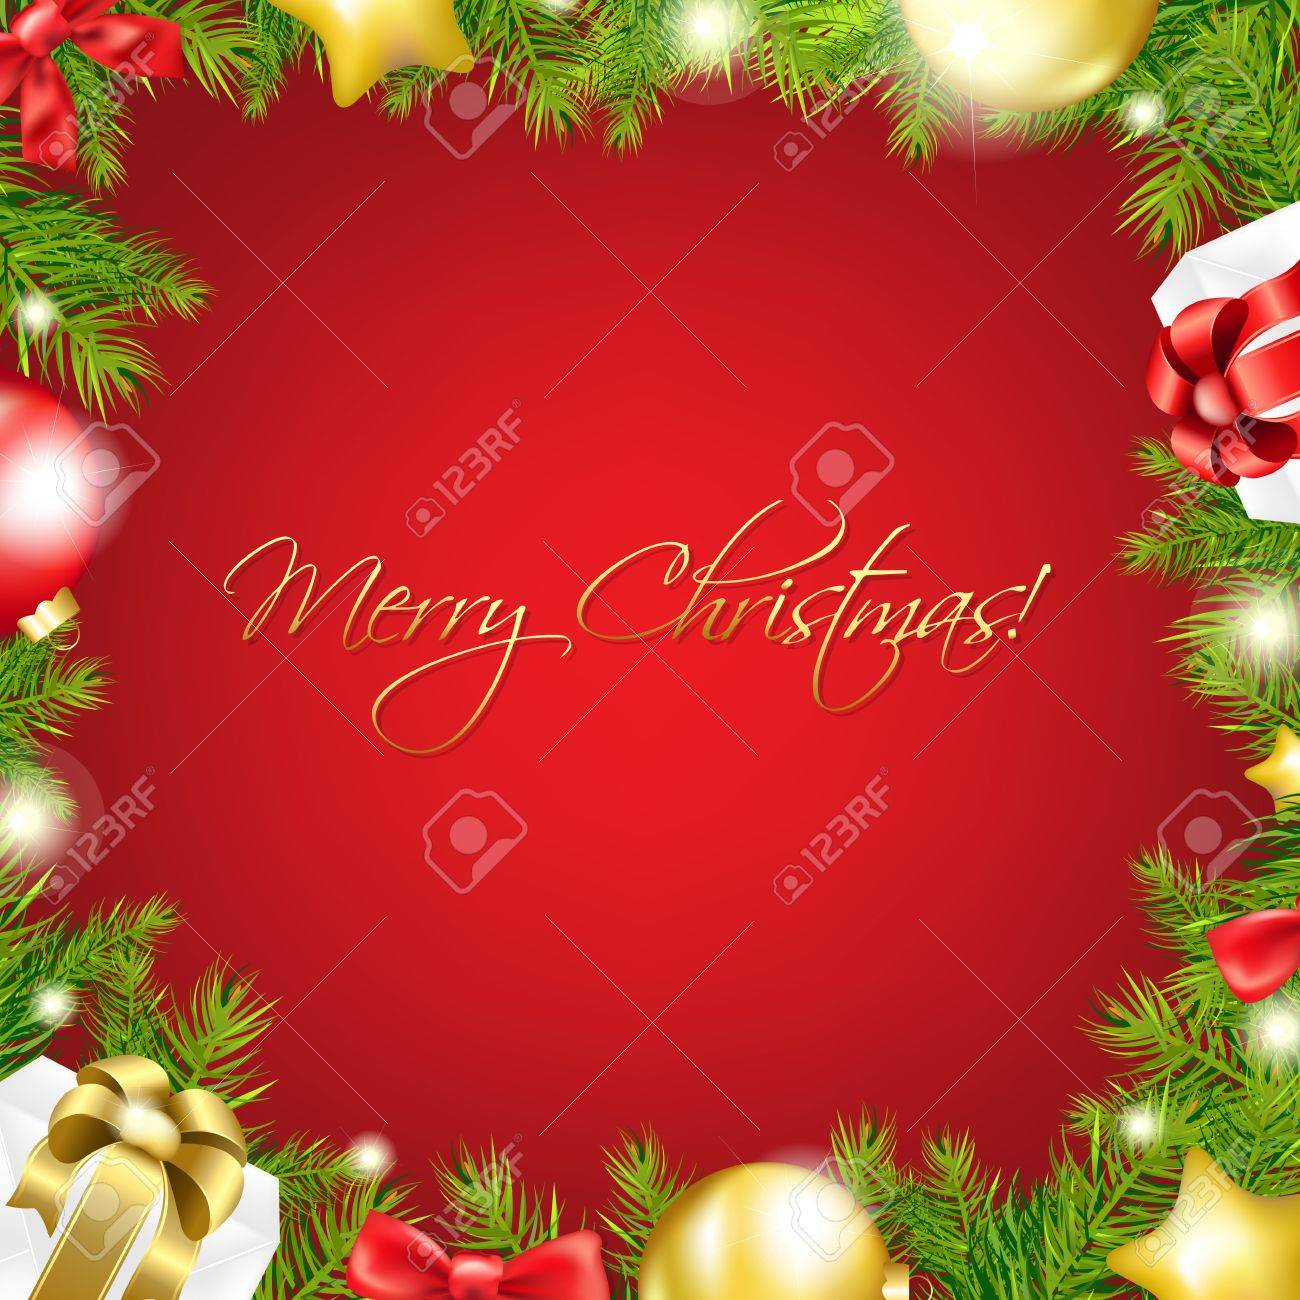 Merry Christmas Red Wallpaper With Gradient Mesh, Vector Illustration Stock Vector - 16928030